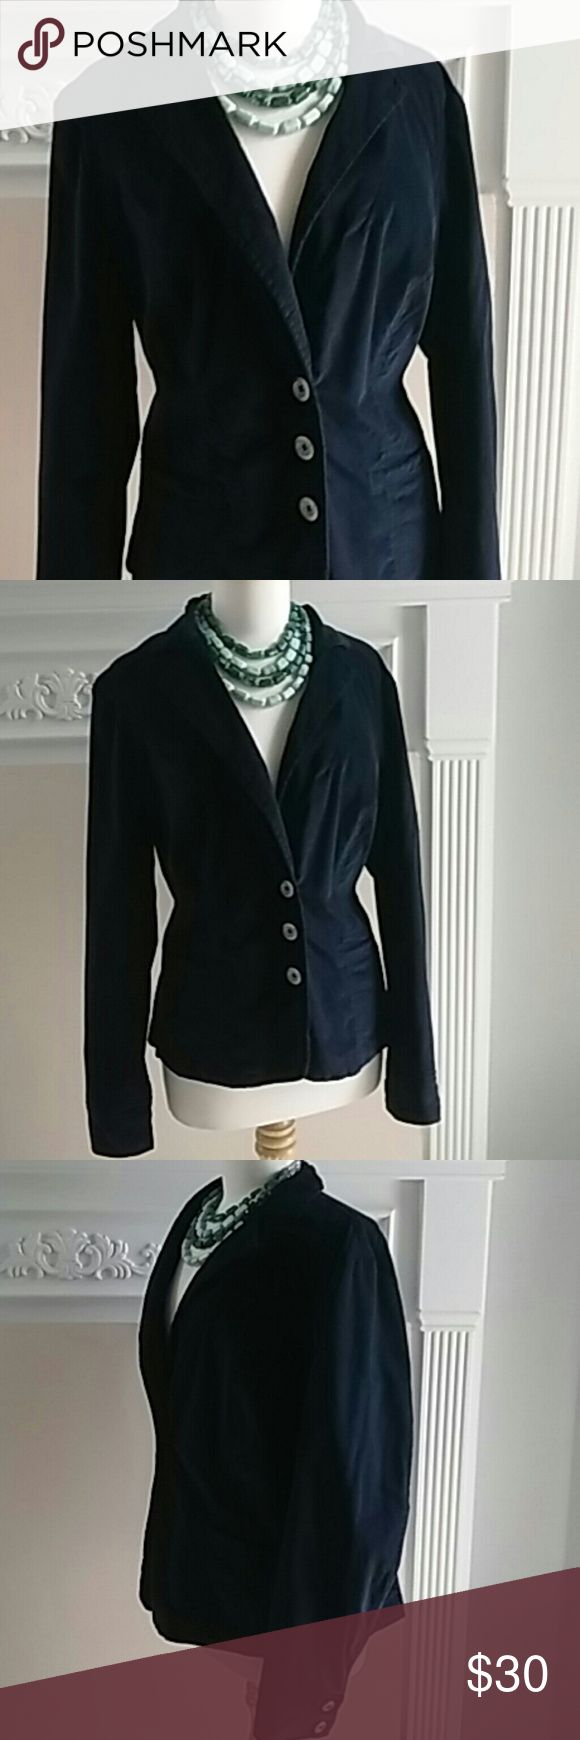 LANE BRYANT NAVY BLUE BLAZER SIZE 16 LAYNE BRYANT CLASSIC NAVY BLUE BLAZER. THE COTTON SPANDEX BLEND HAS A BIT OF STRETCH THAT IS SUPER COMFORTABLE. CAN BE DRESSED UP OR DOWN. SIZE 16. Lane Bryant Jackets & Coats Blazers